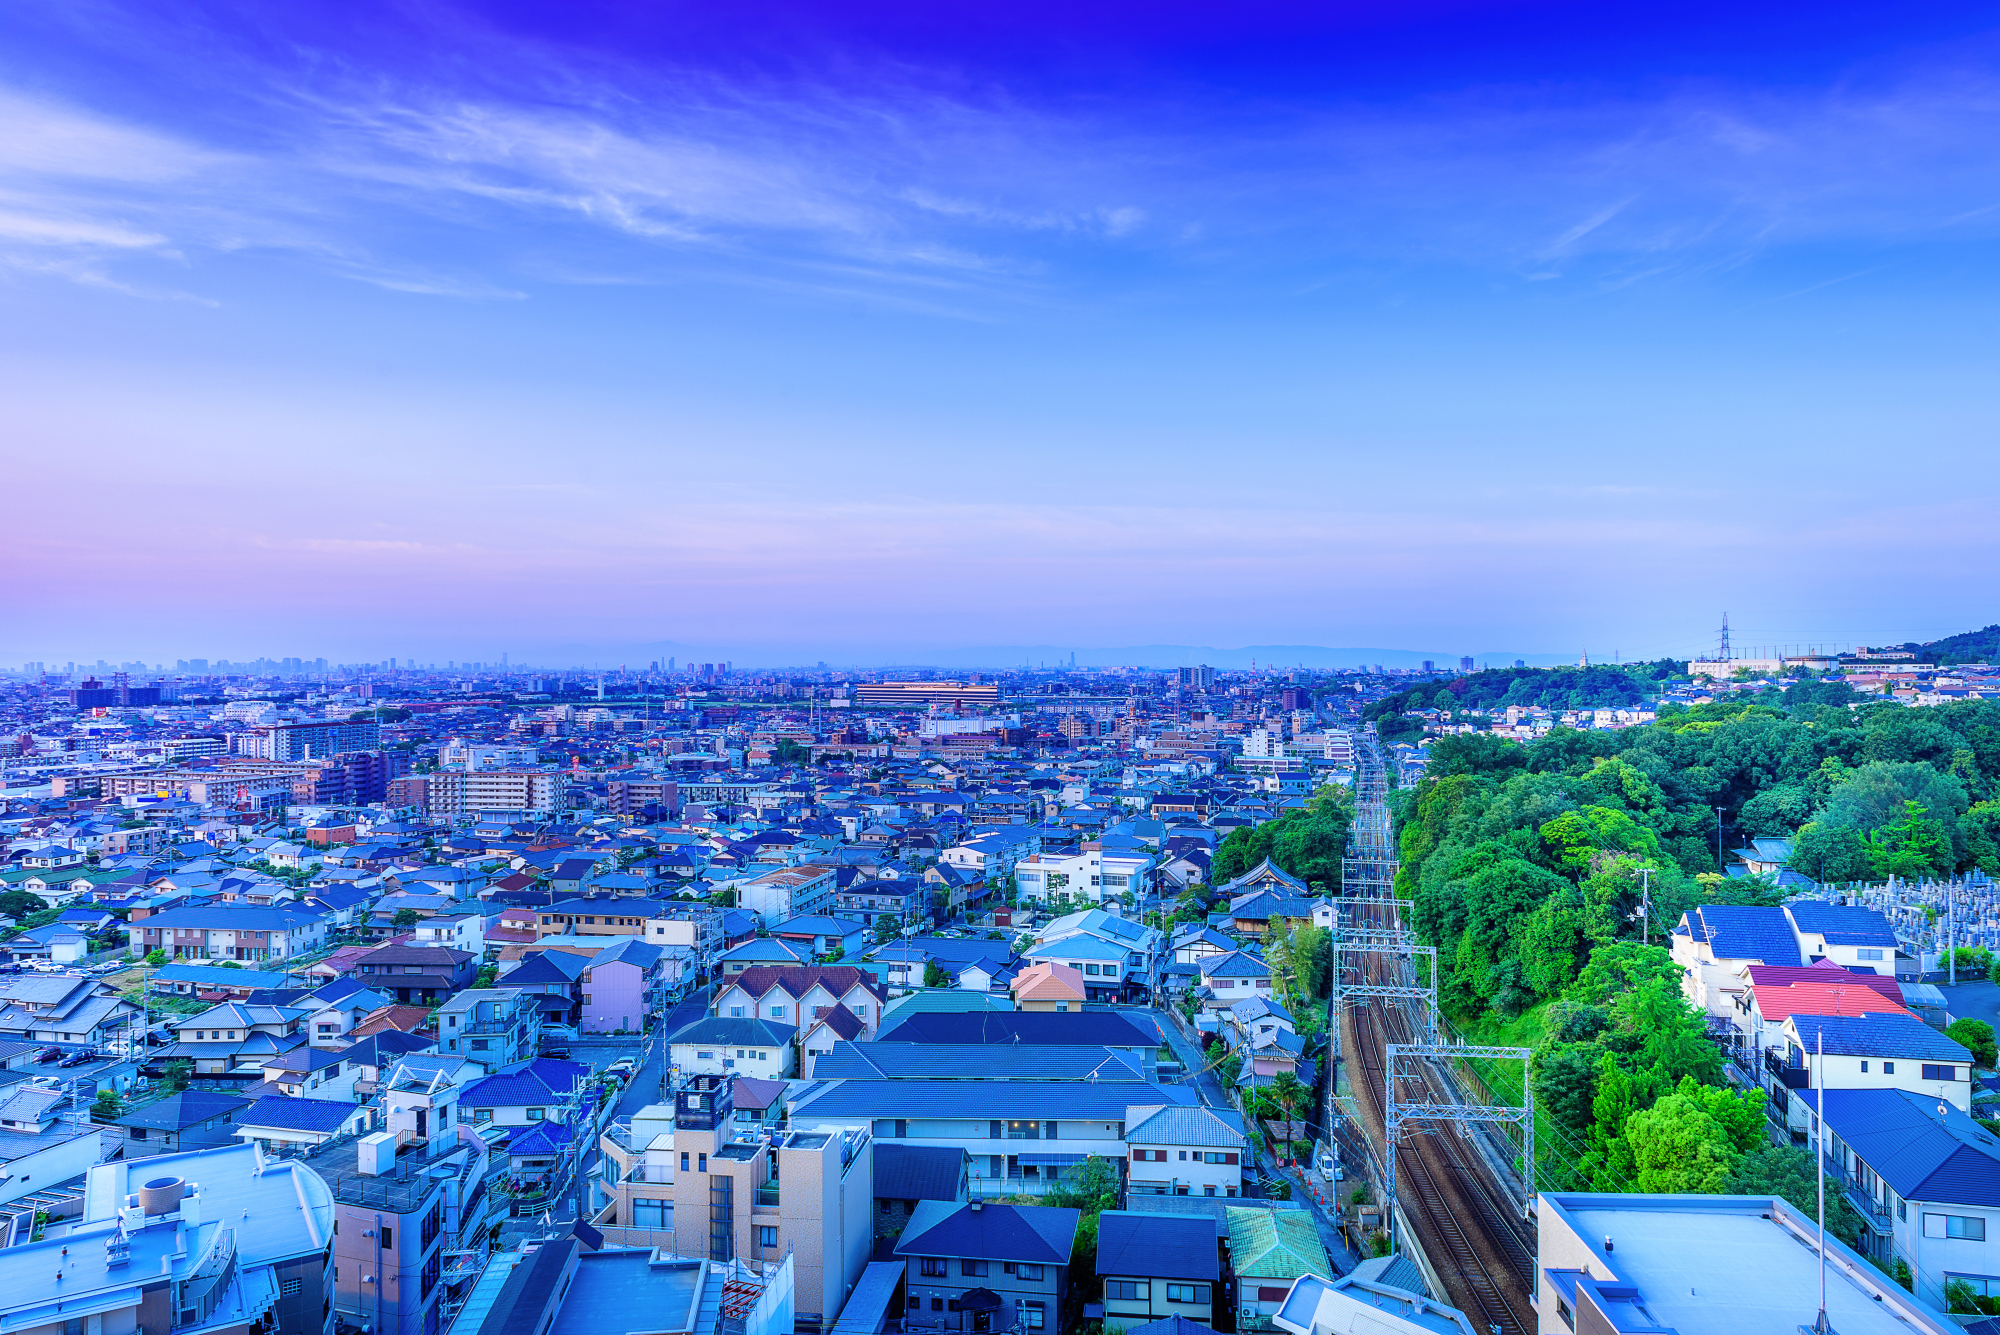 Land of the sprawling fun:  Could it be that Japan's true magic lurks not in its mega-cities or beautiful countryside, but instead in its tepid, much- maligned suburbs? | ISTOCK